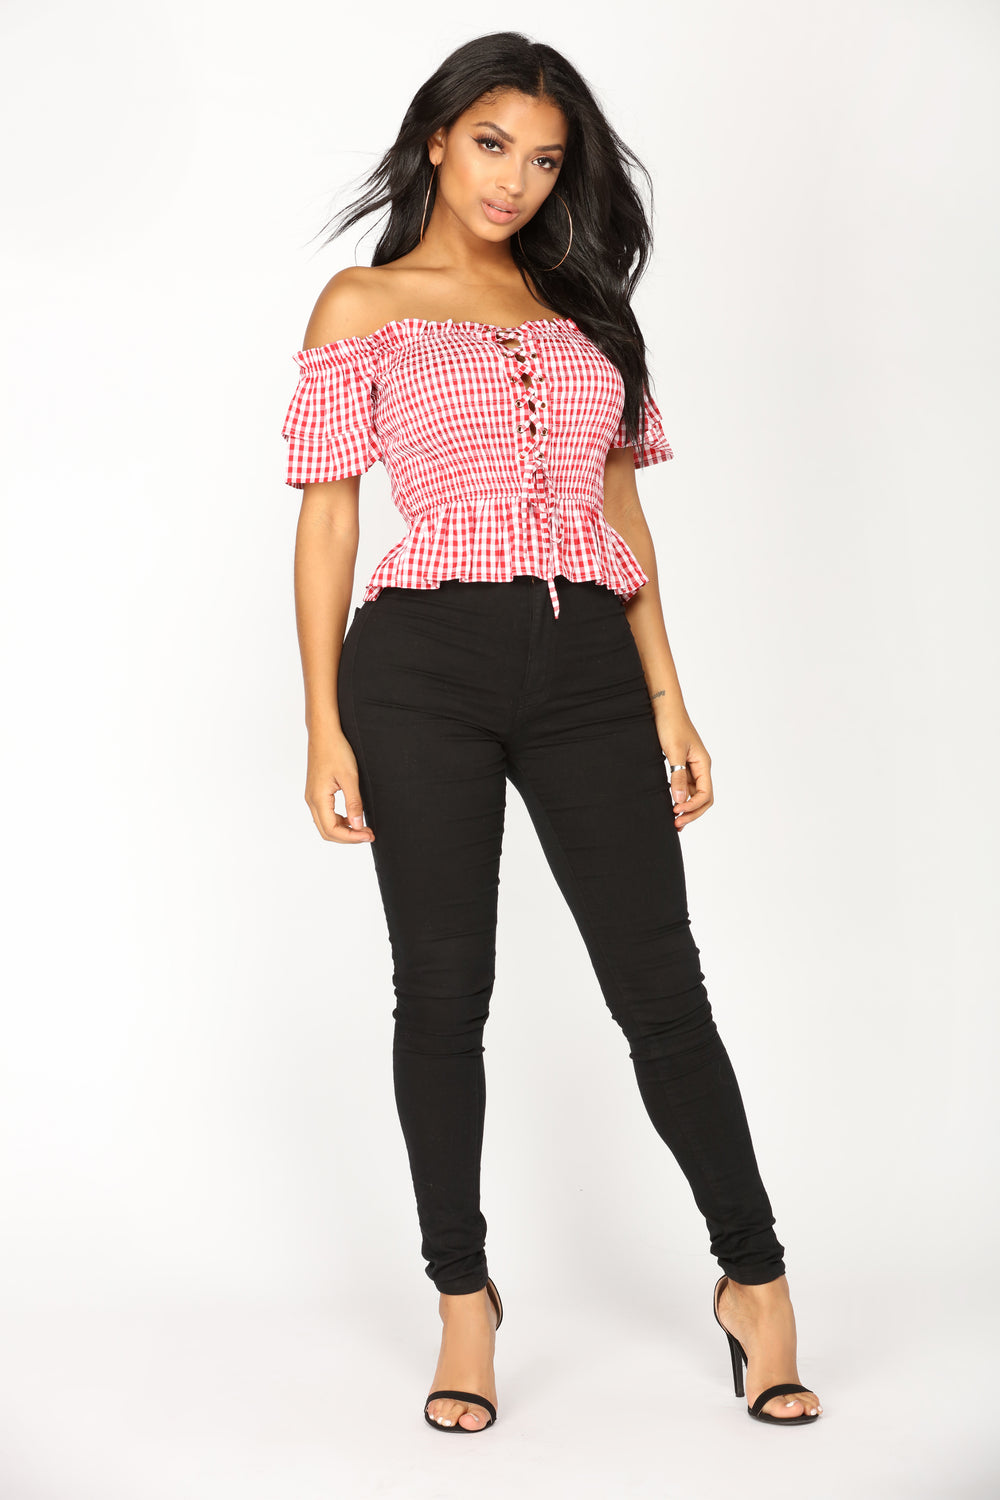 Zaina Off Shoulder Top - Red/White